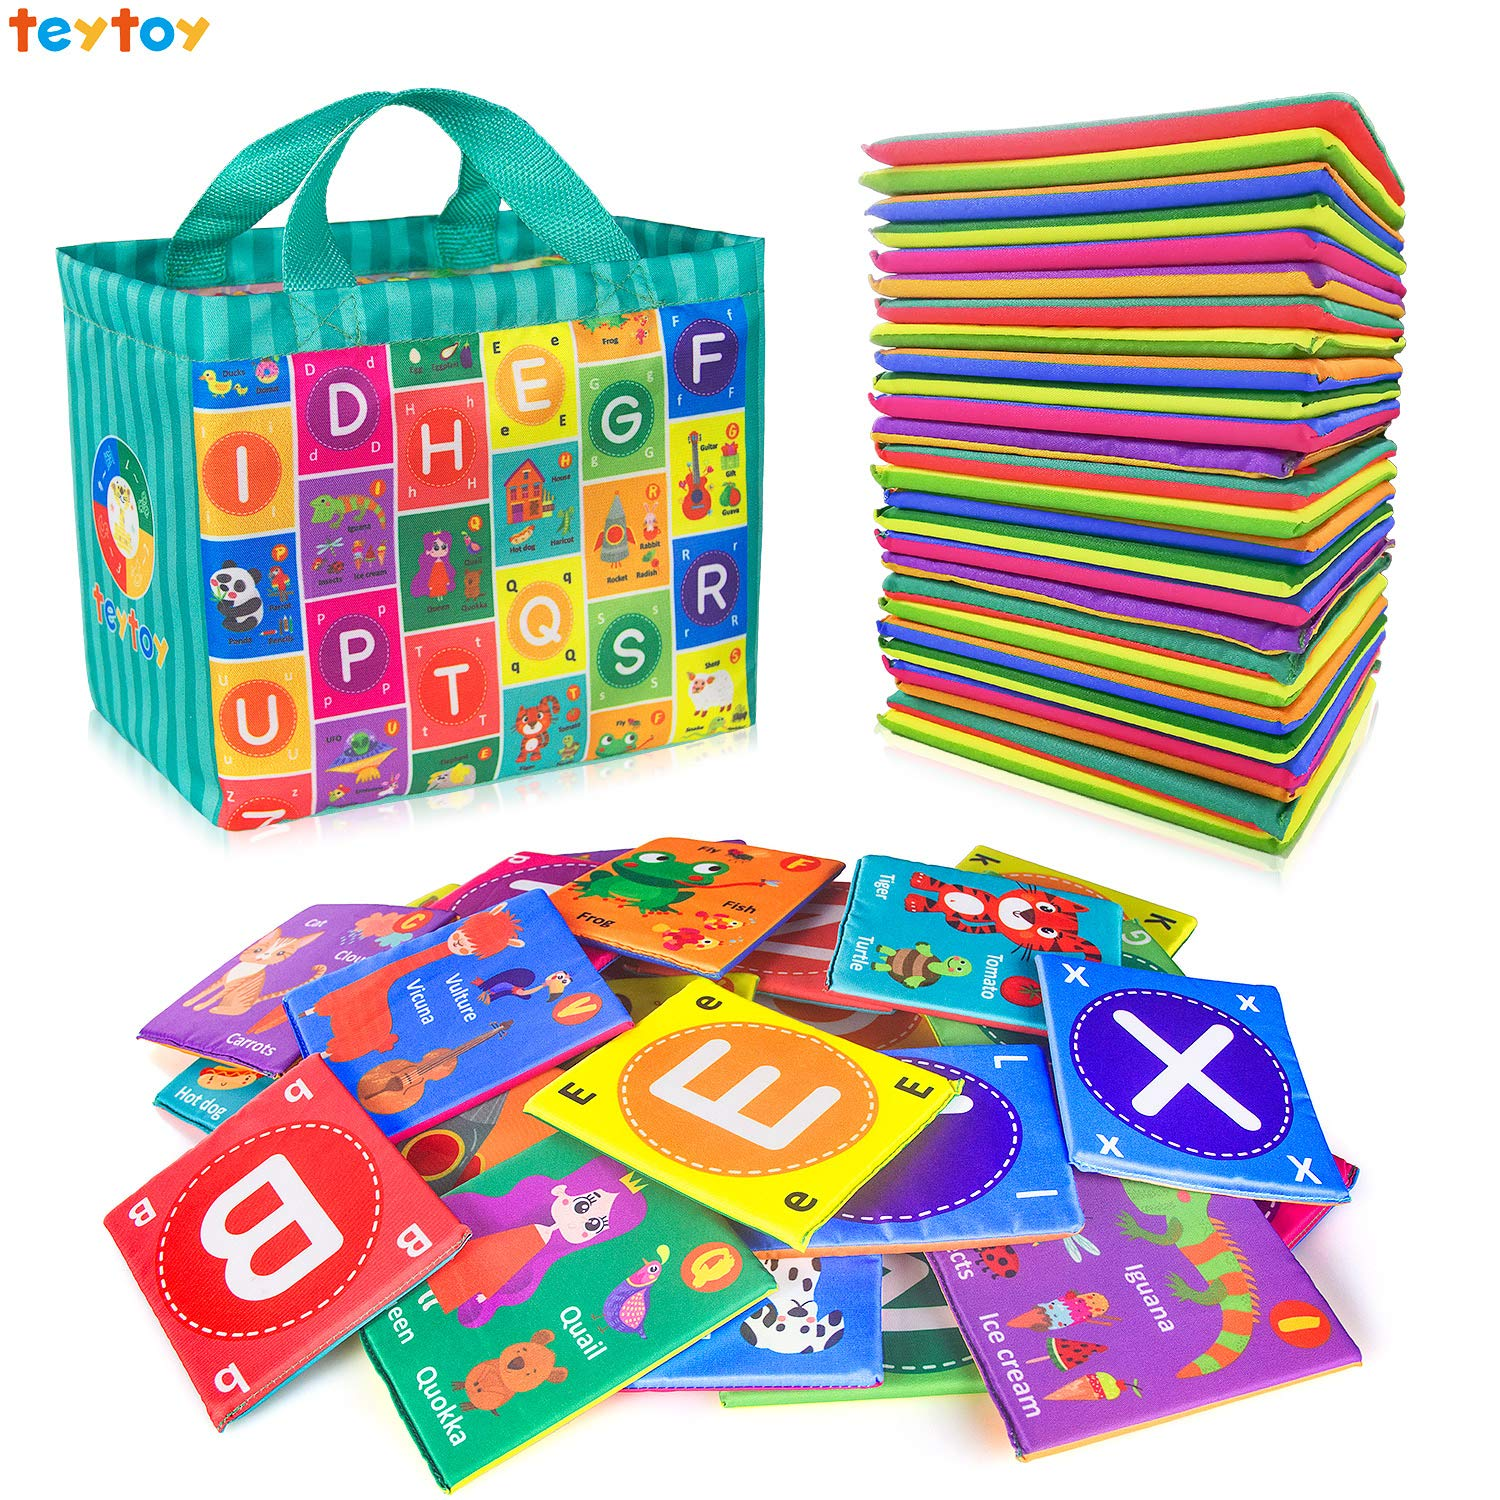 teytoy Baby Soft Alphabet Cards Toys, Baby Early Learning Shape Color Recognition Puzzle Toy with Storage Bag, Washable Soft Cloth Toy for Over 0 Years by teytoy